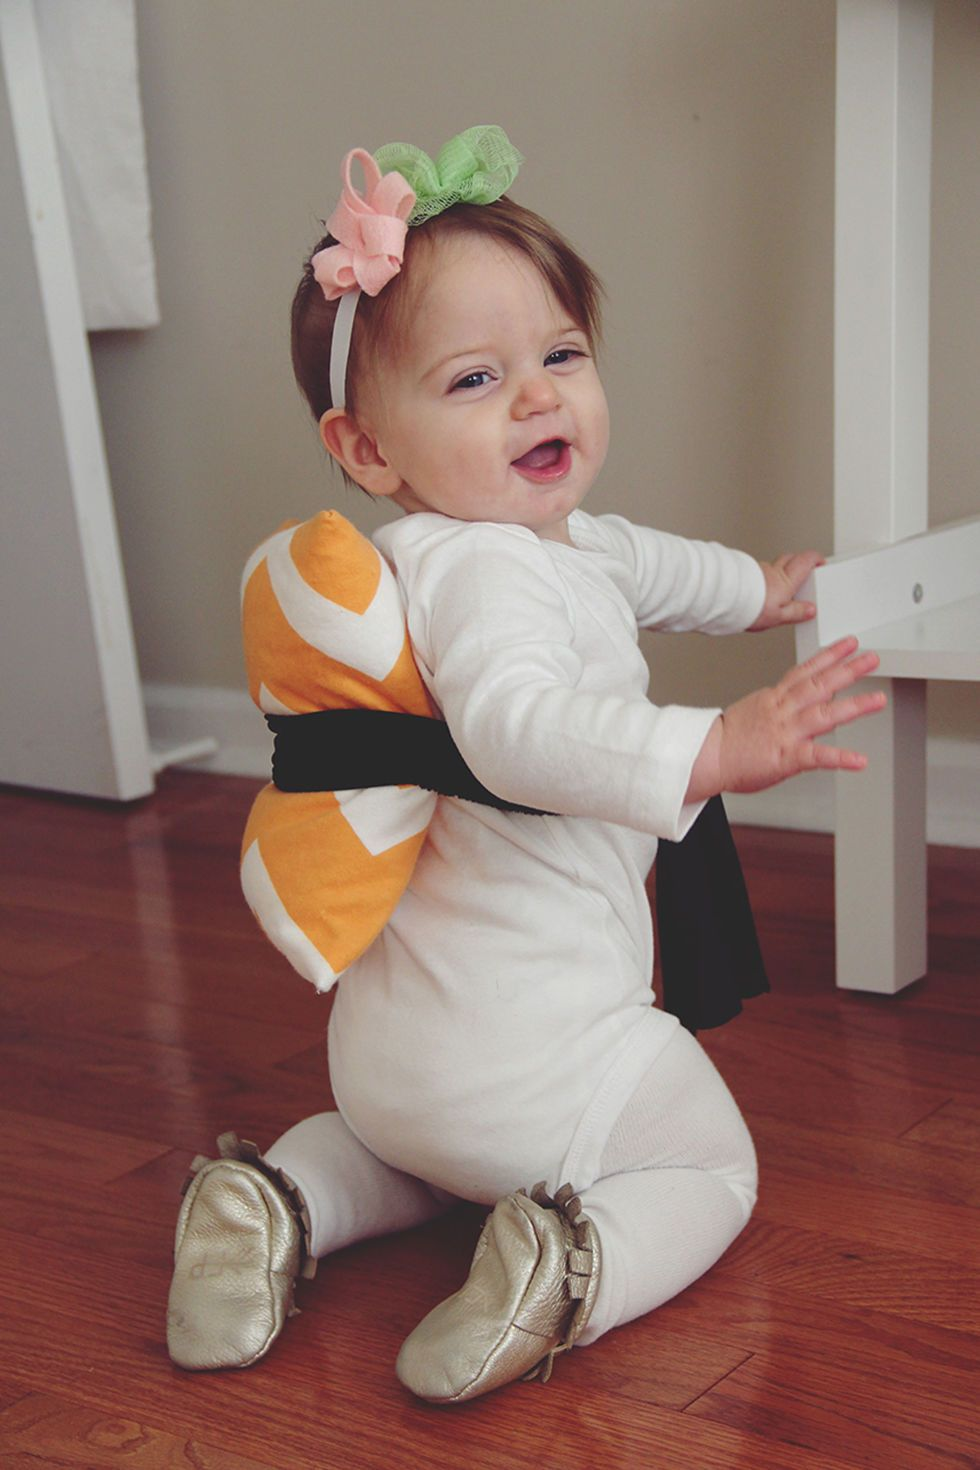 Emejing Best Baby Girl Halloween Costumes Gallery - surfanon.us - surfanon.us  sc 1 st  Pinterest & Emejing Best Baby Girl Halloween Costumes Gallery - surfanon.us ...